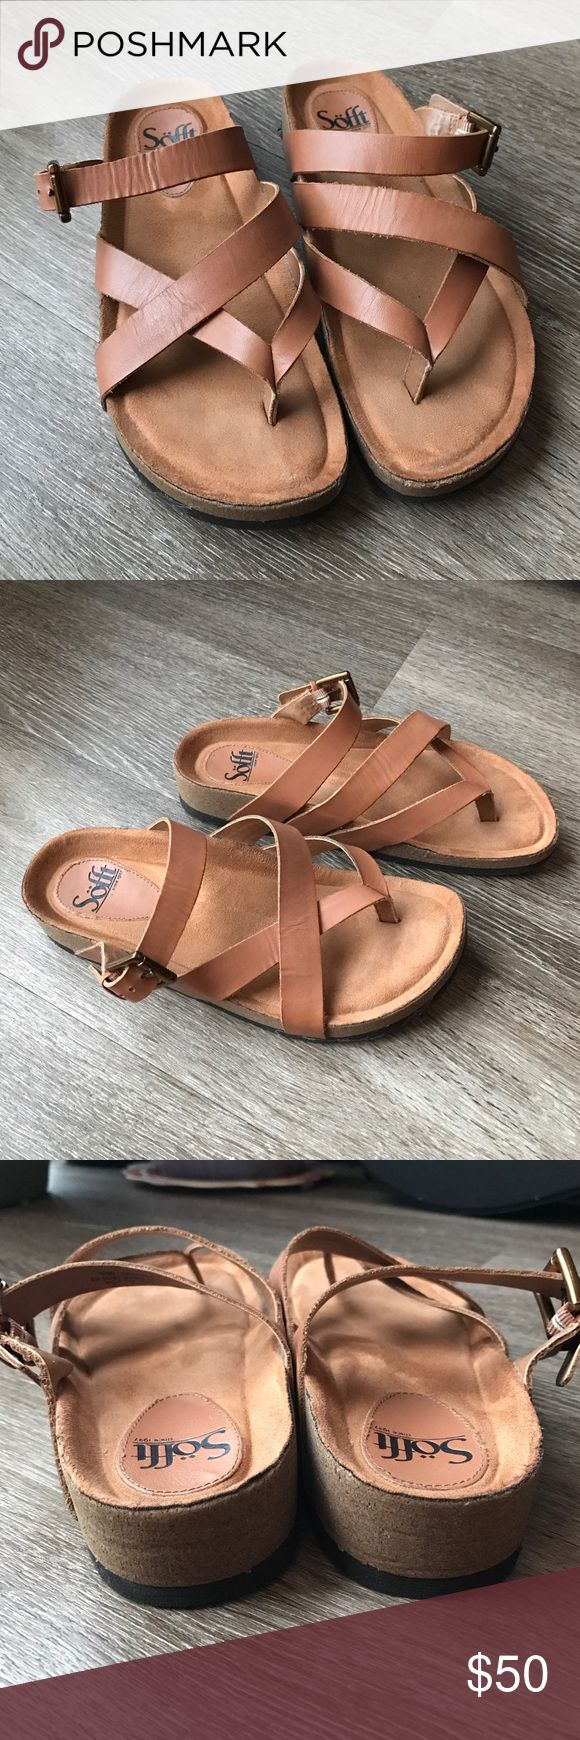 Sofft camel leather sandals These Sofft brand sandals are like birkenstocks only way cushier and softer! Great molded footbed with very soft insoles. Tan camel color leather. Size 8M Sofft Shoes Sandals